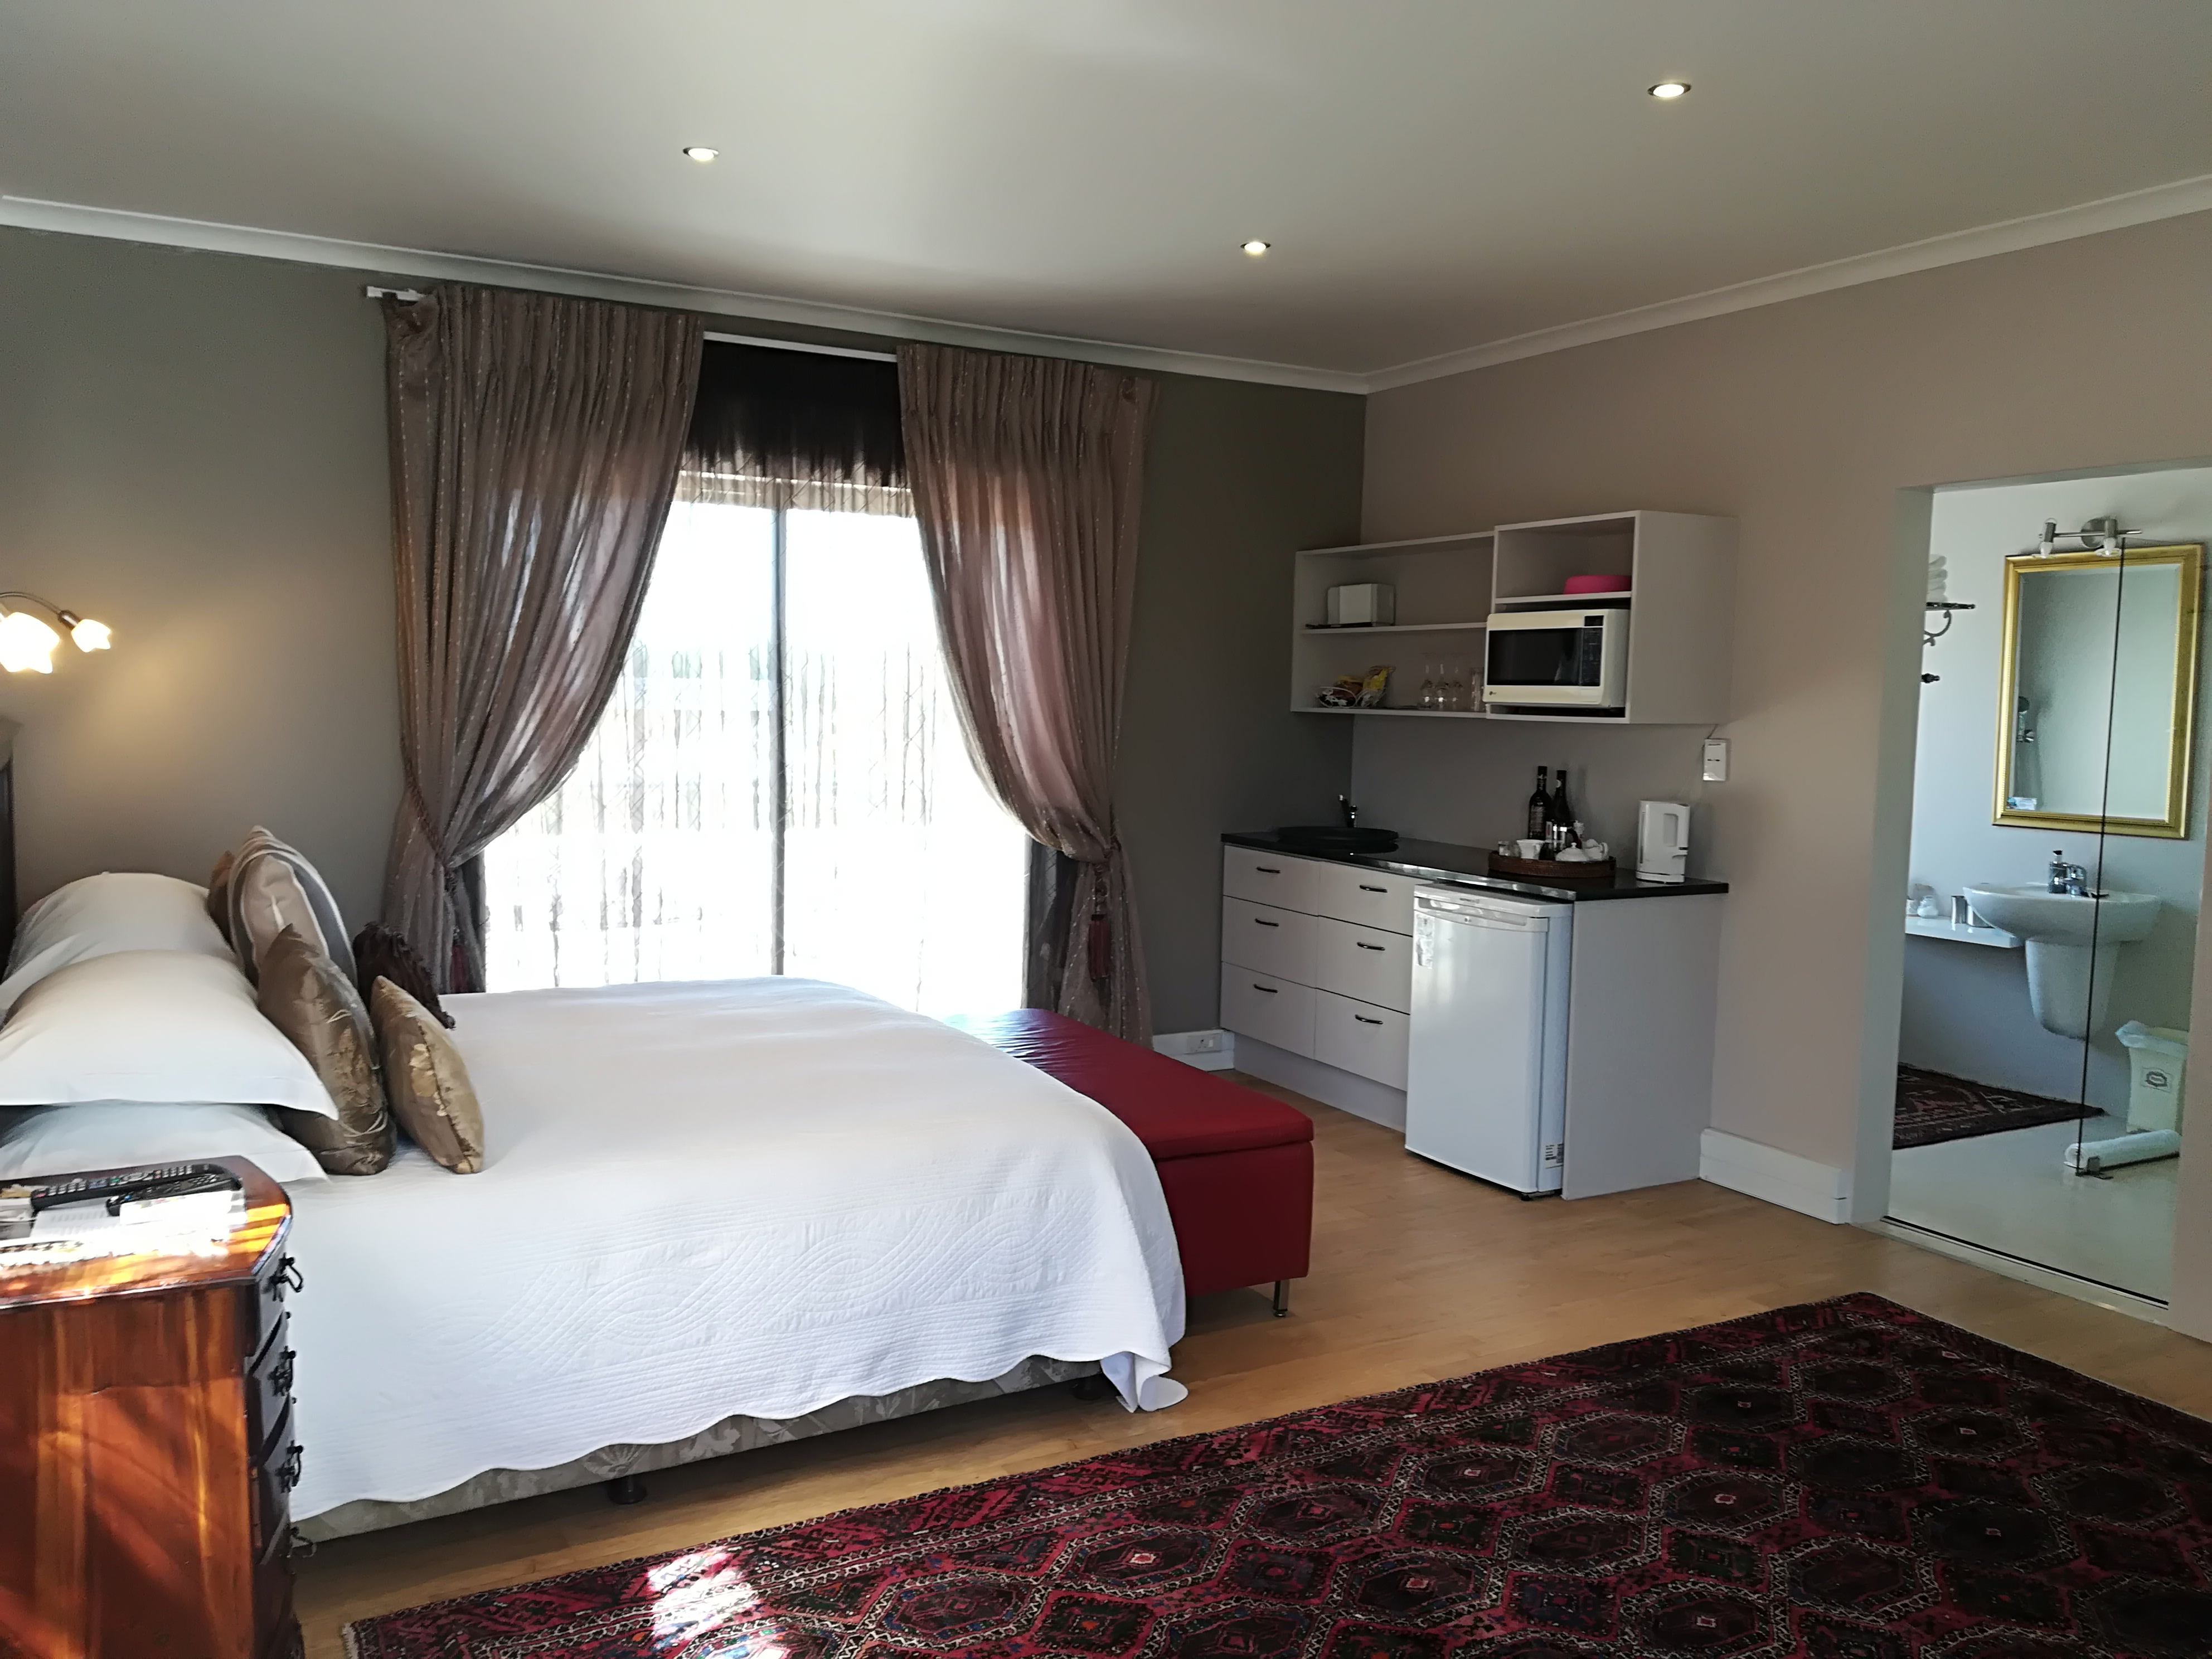 Extra Length King Size Bed Hotel In Durbanville